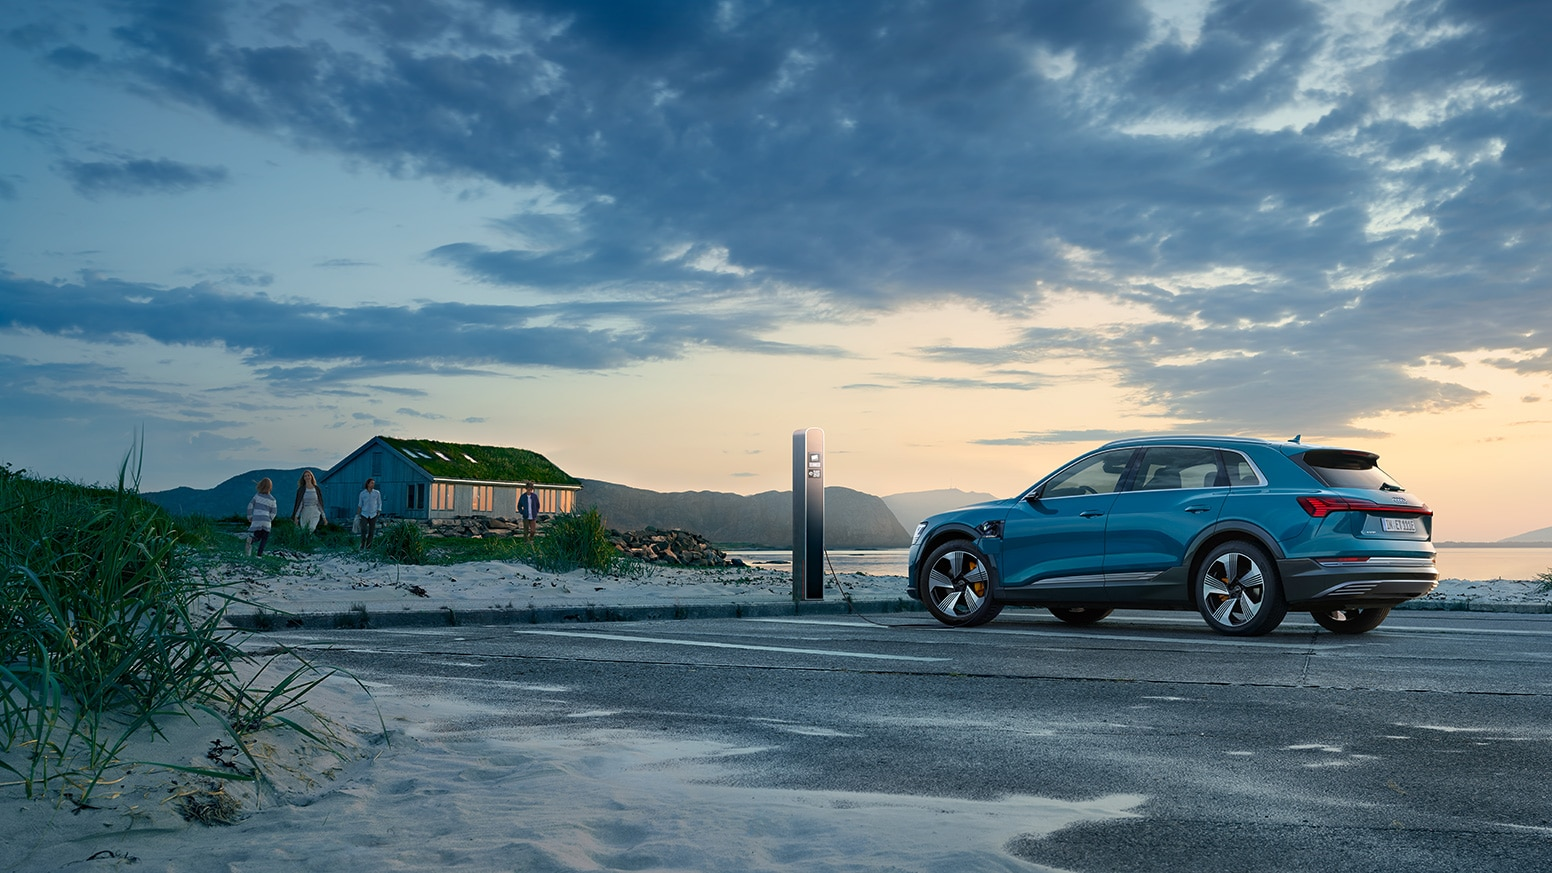 Although Most Normal Driving Distances Will Never Fully Deplete Your E Tron Battery Level 1 Charging May Require Vehicle To Charge For More Than A Day